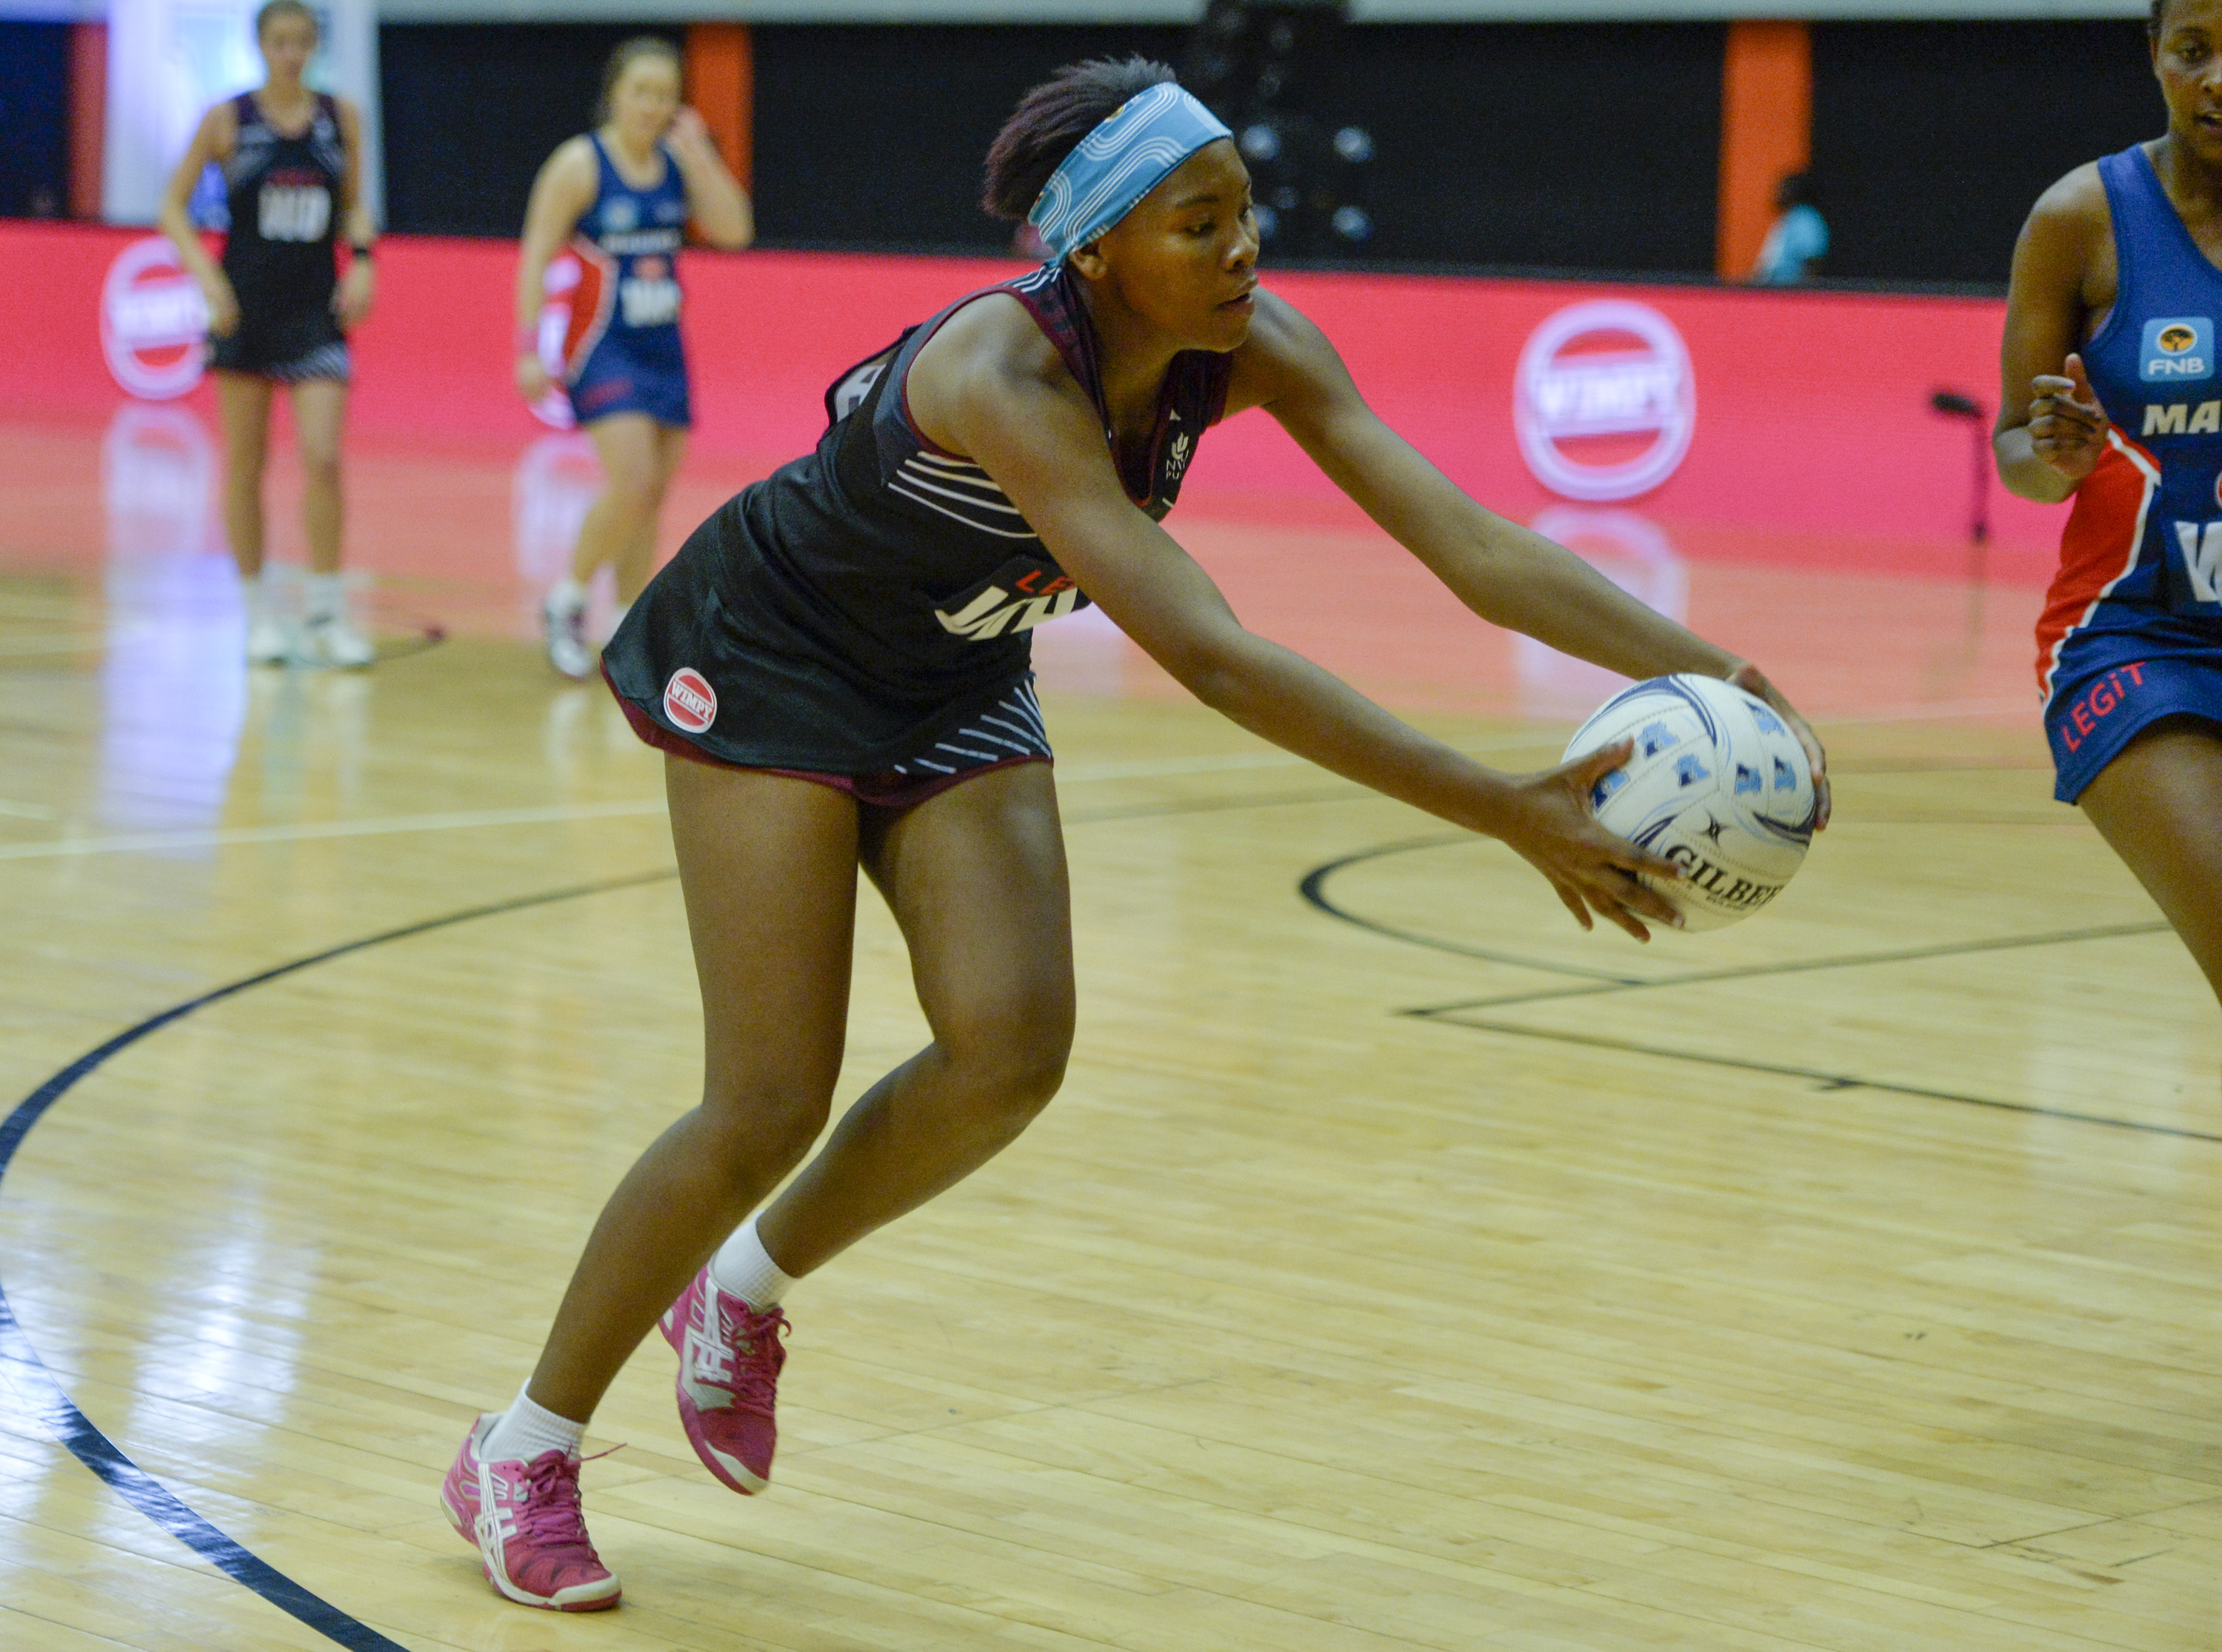 Netballers out to defend regional title in Zimbabwe